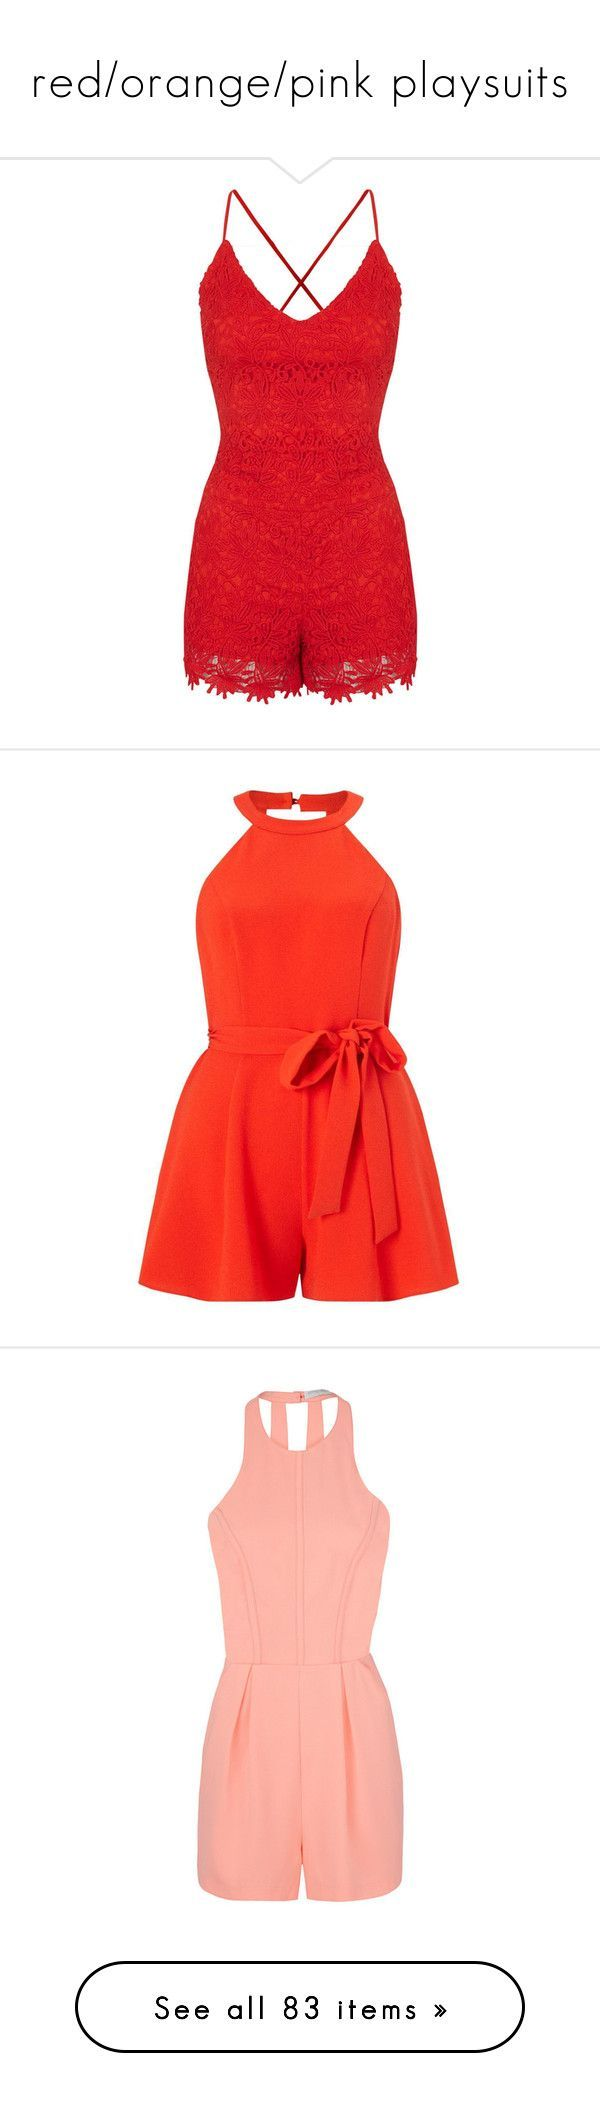 """""""red/orange/pink playsuits"""" by lulucosby ❤ liked on Polyvore featuring jumpsuits, rompers, romper, dresses, playsuits, red, lace jumpsuit, dressy romper, red romper jumpsuit and romper jumpsuit"""